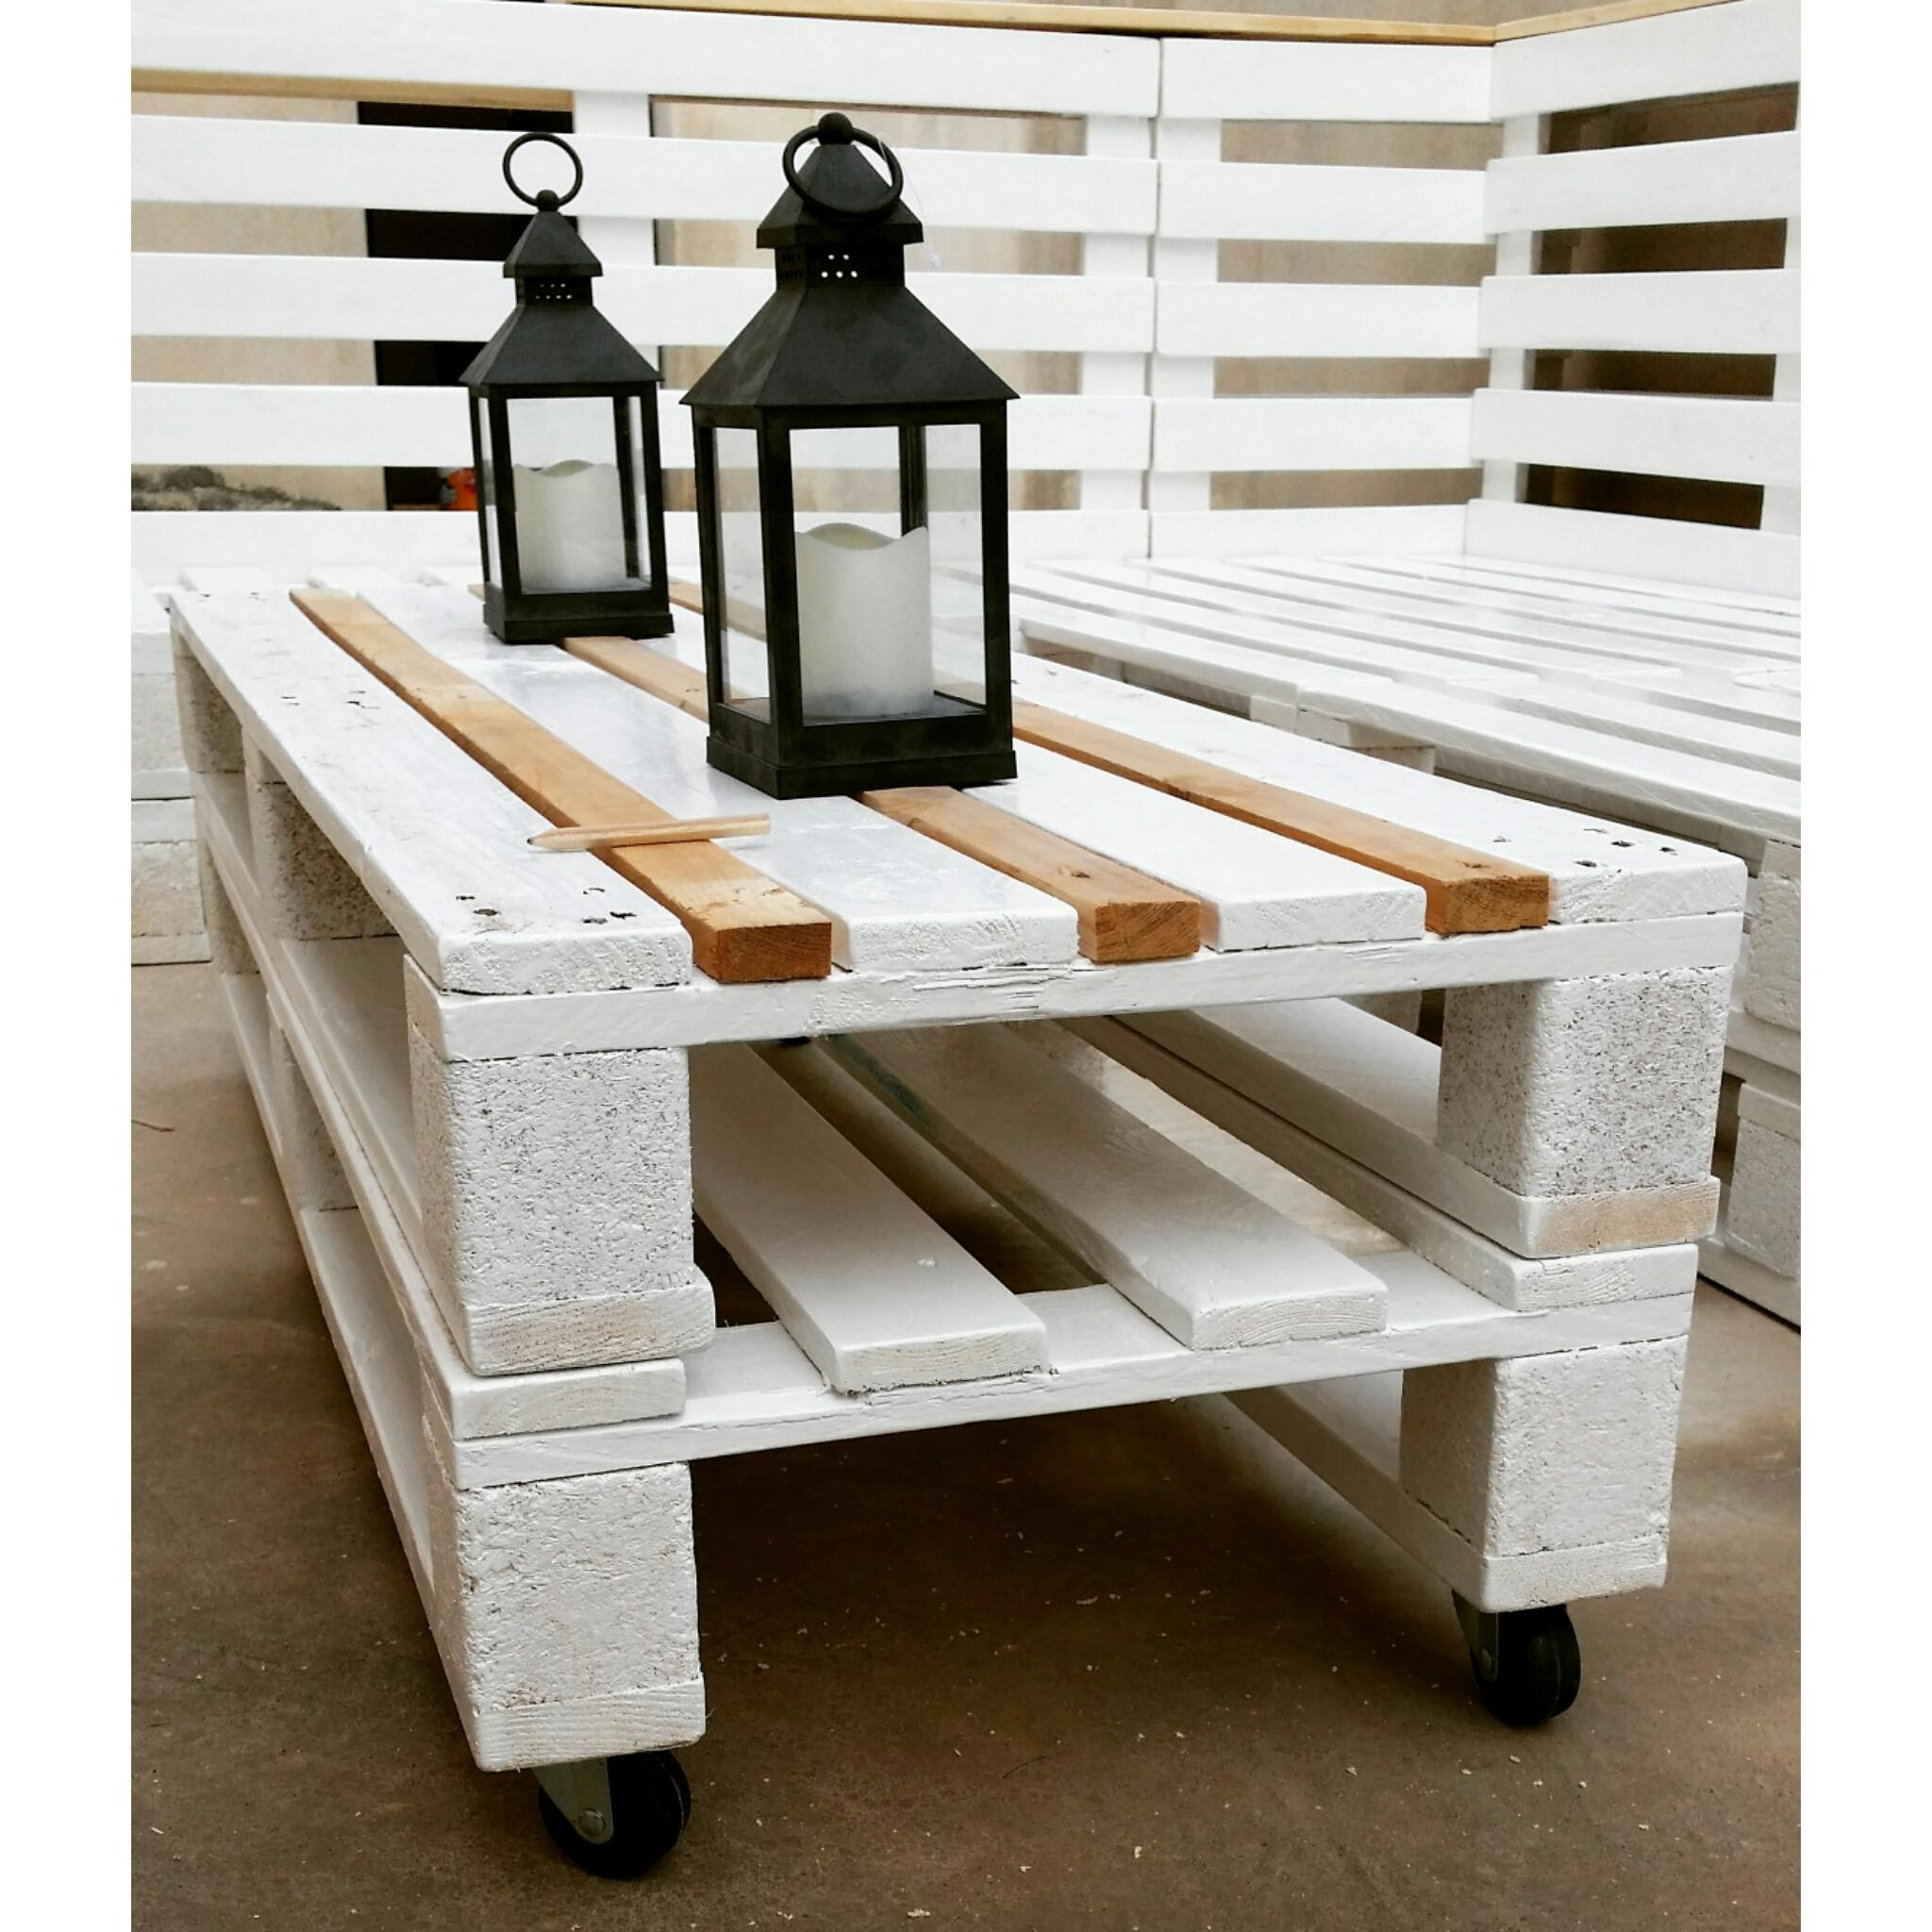 home qatar order items pallets bench furniture living from goods outdoor advert